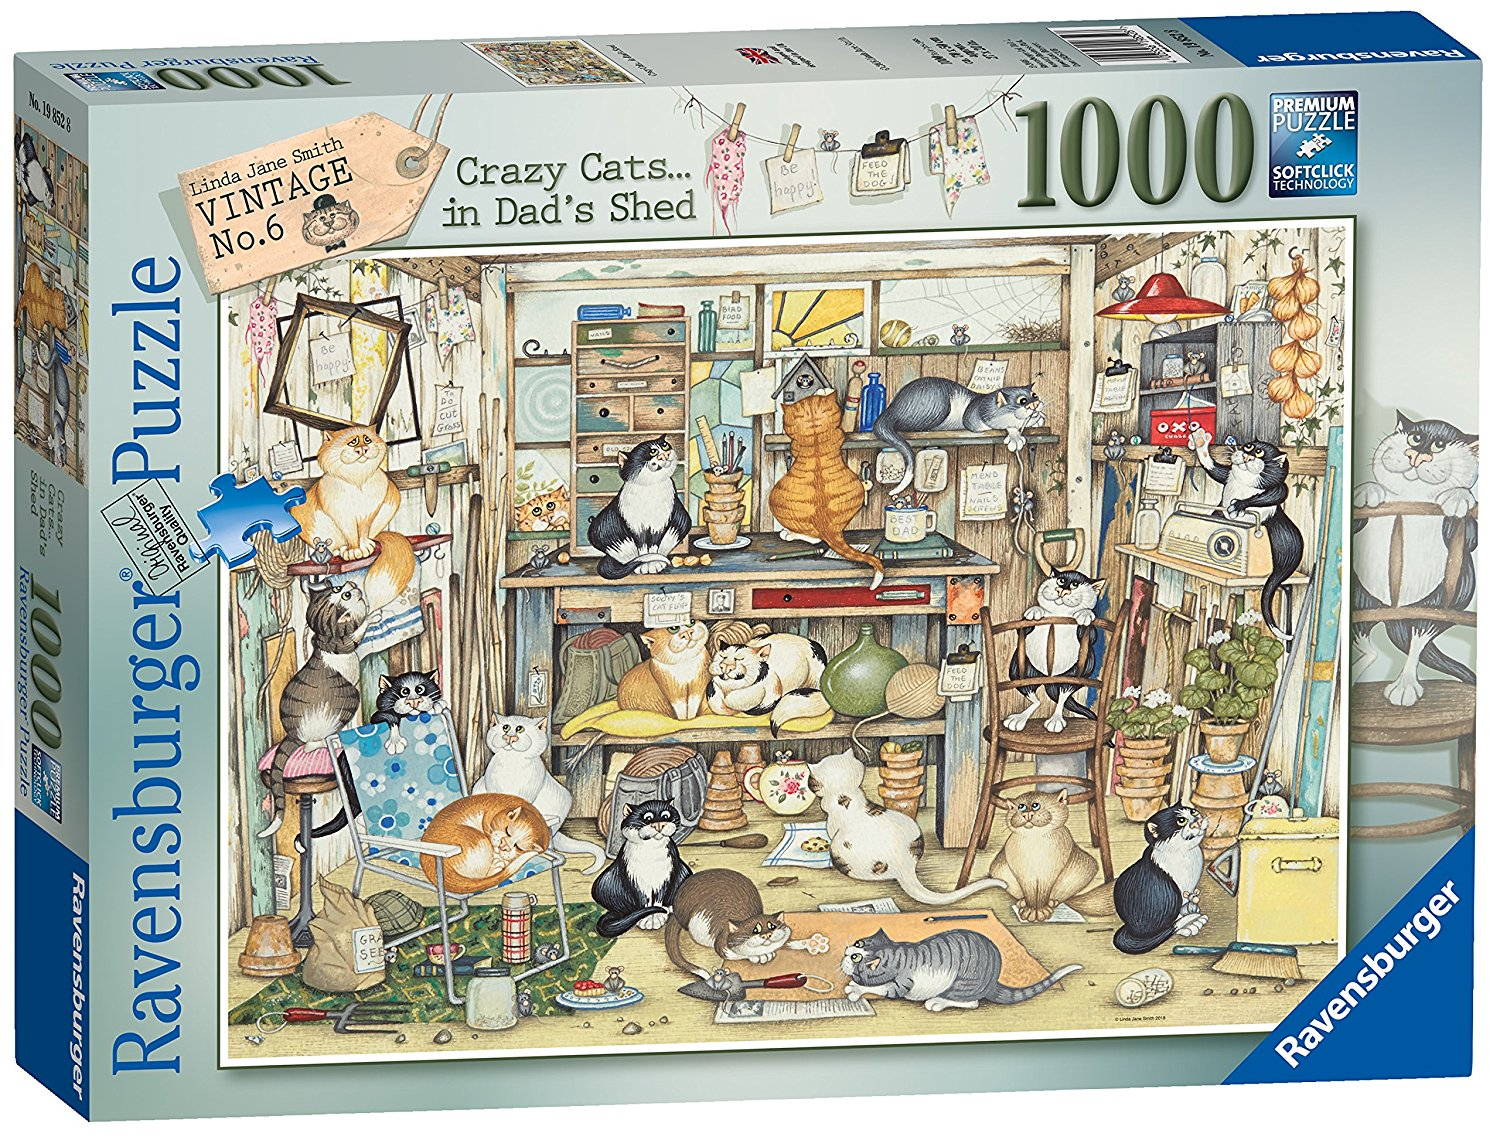 Crazy Cats, Dad's Shed, 1000pc